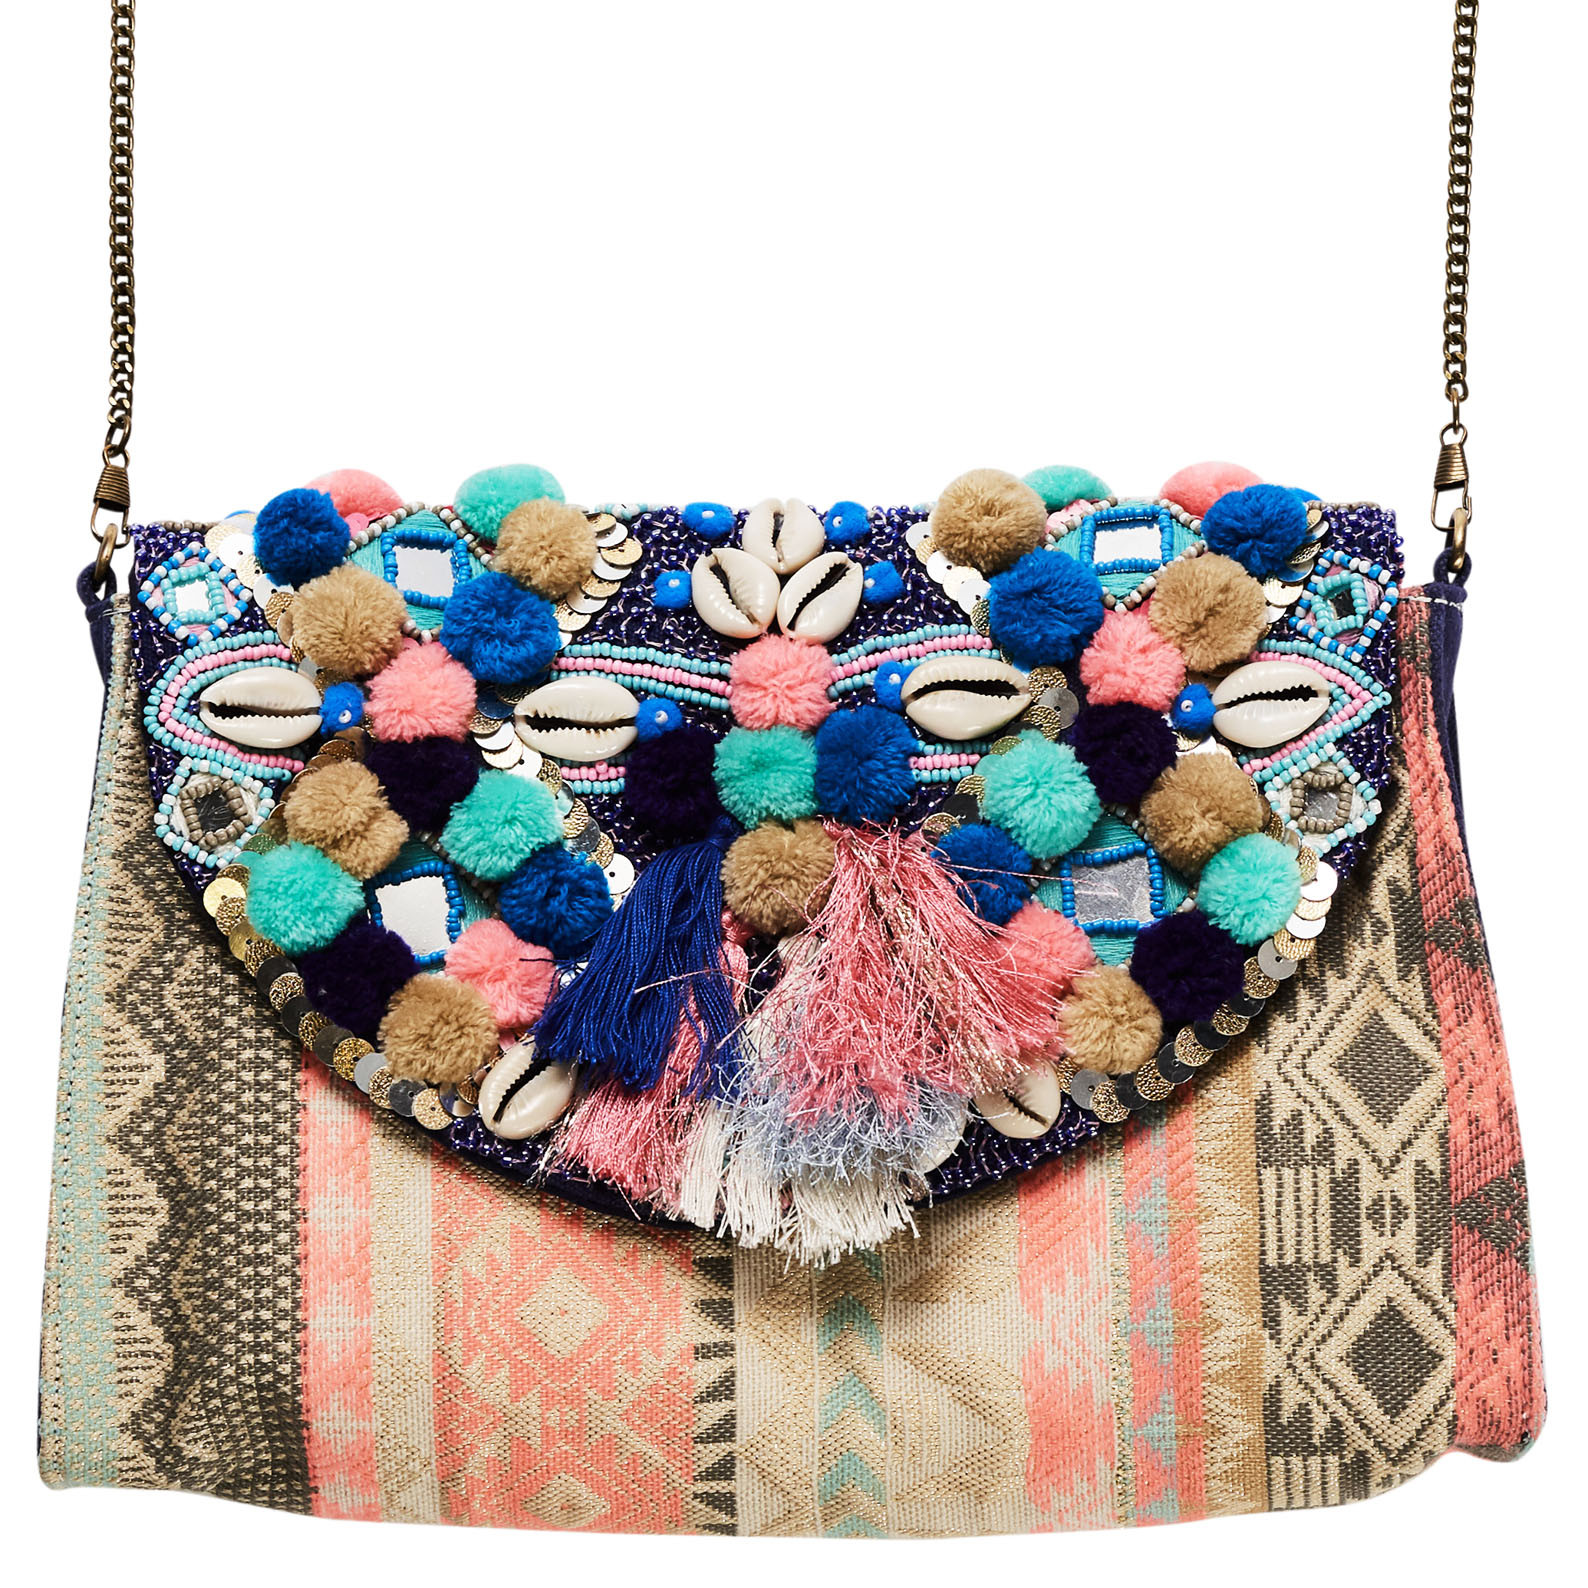 Bohemia Collective Clutch